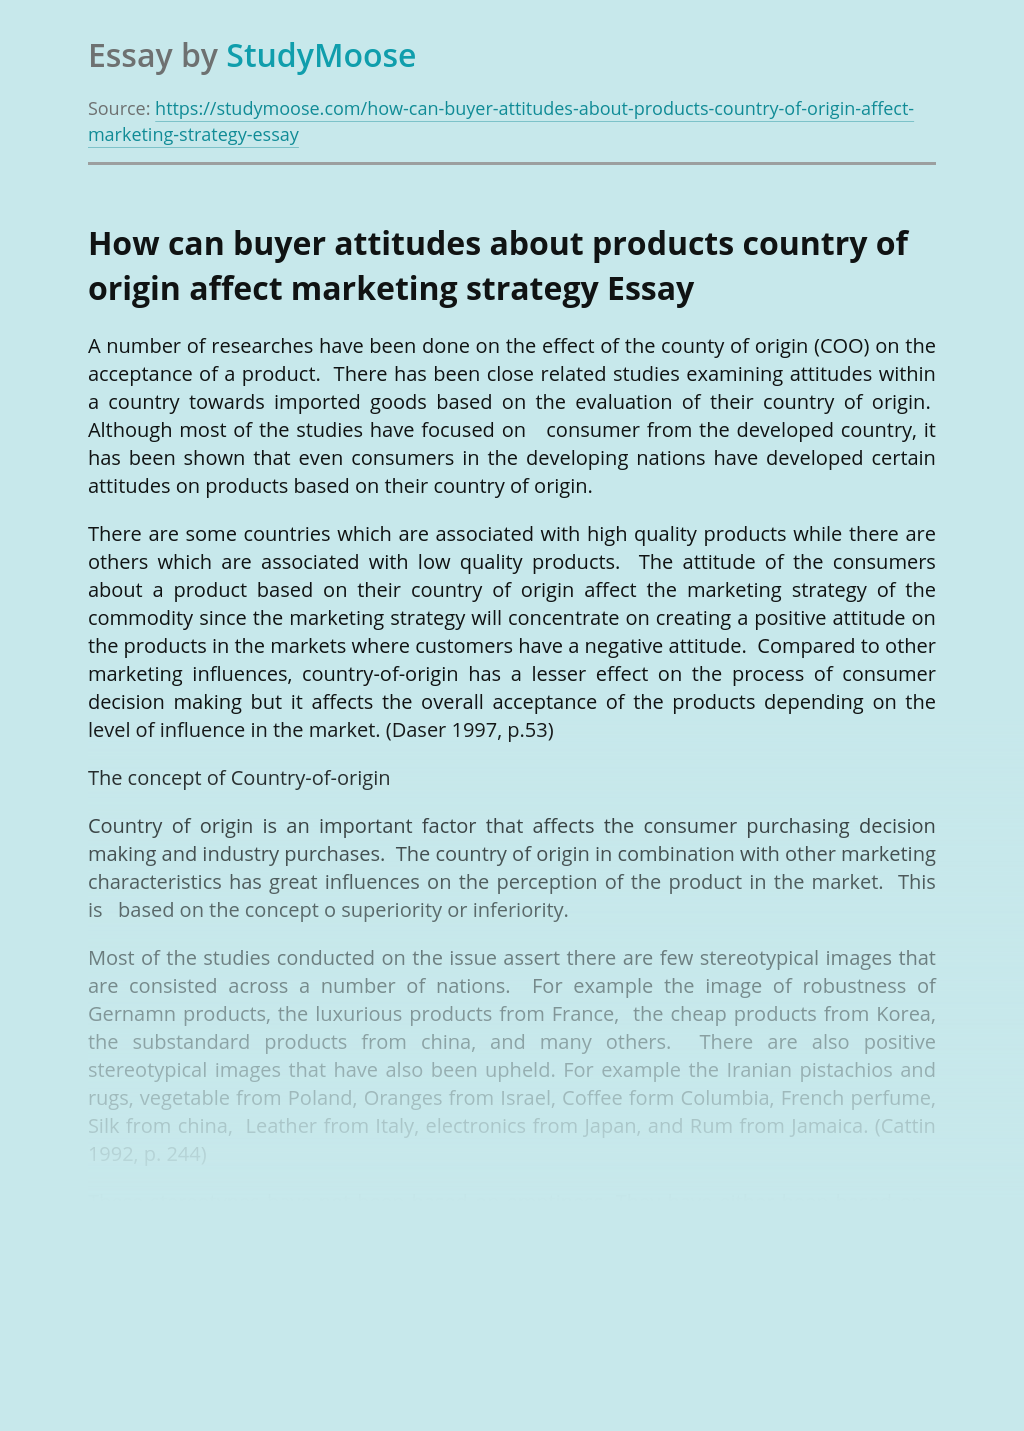 How can buyer attitudes about products country of origin affect marketing strategy